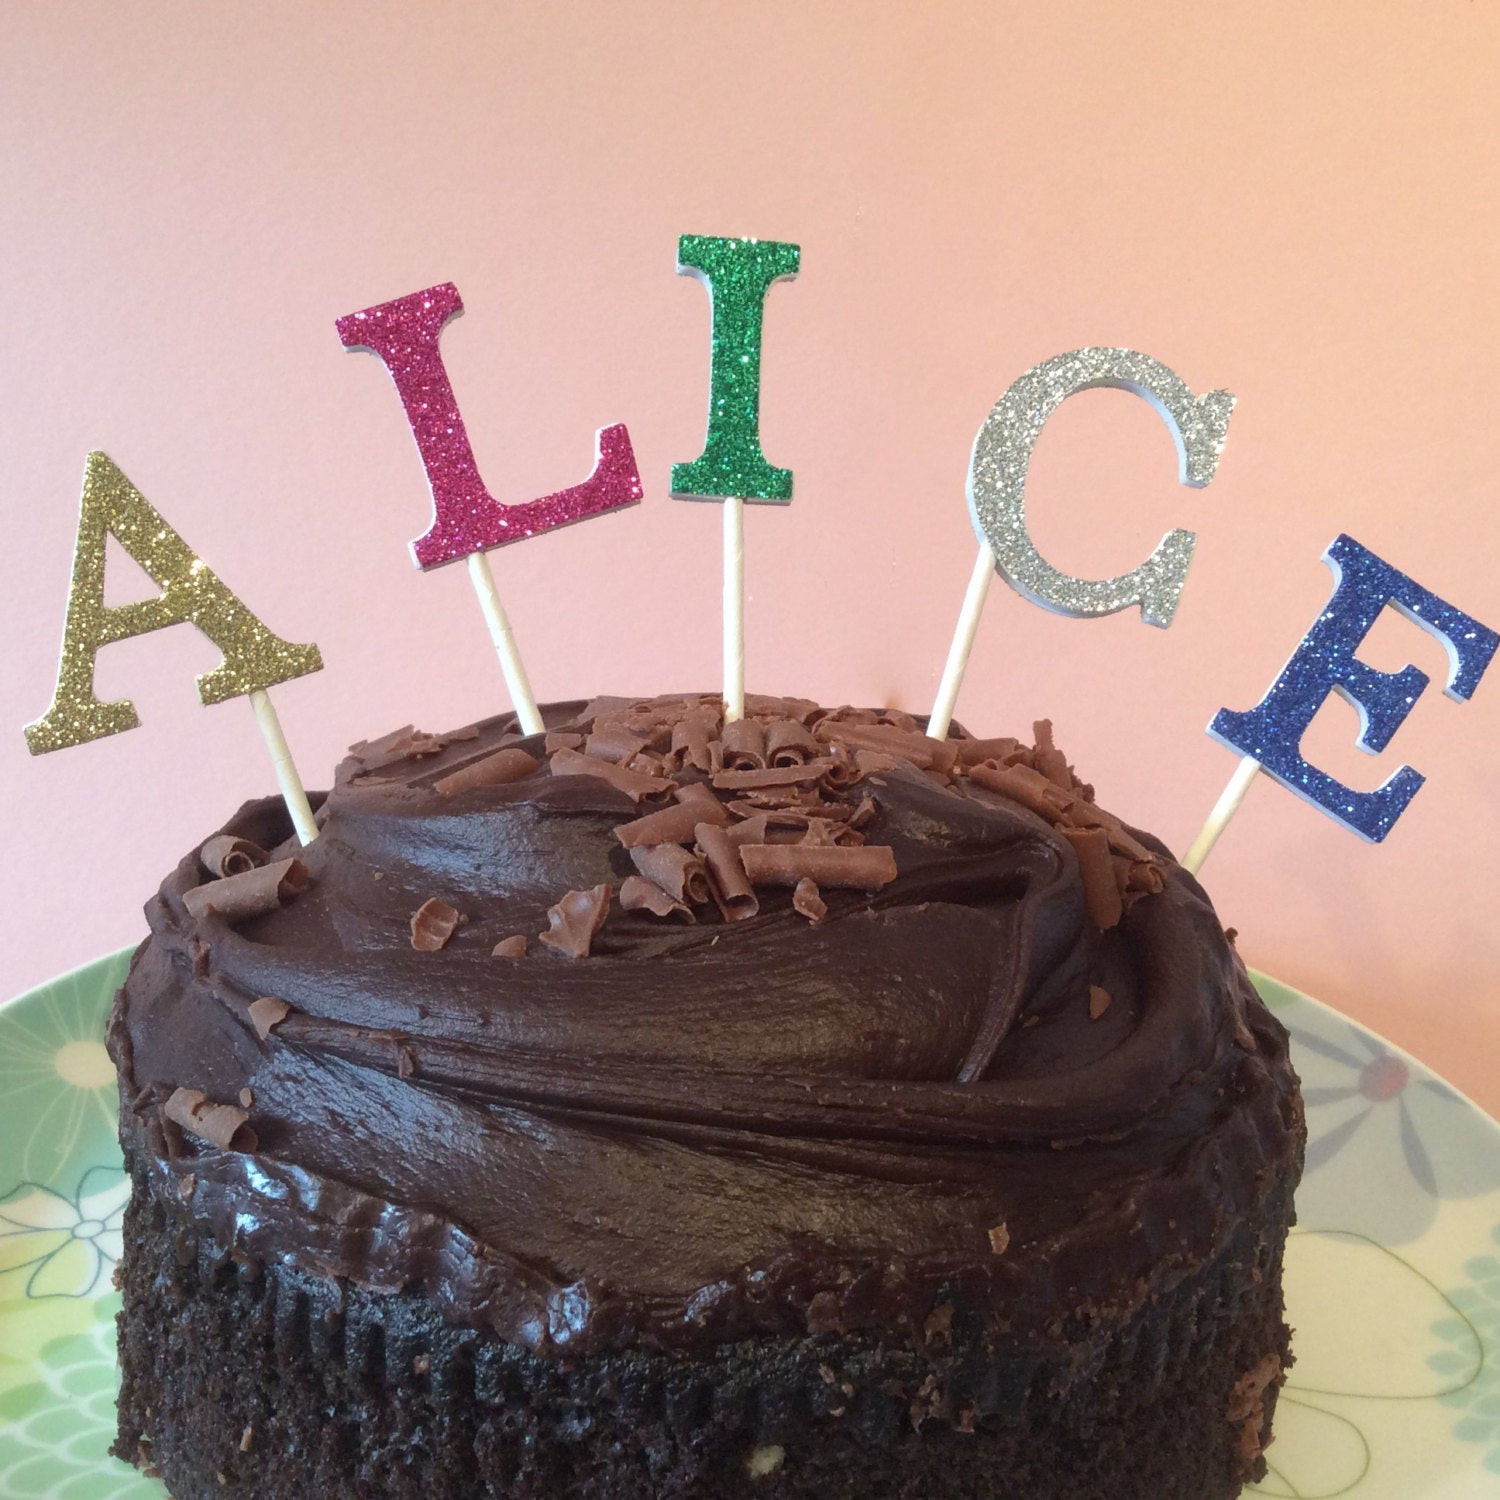 Best ideas about Glitter Birthday Cake . Save or Pin Glitter letters cake topper birthday cake topper wedding Now.